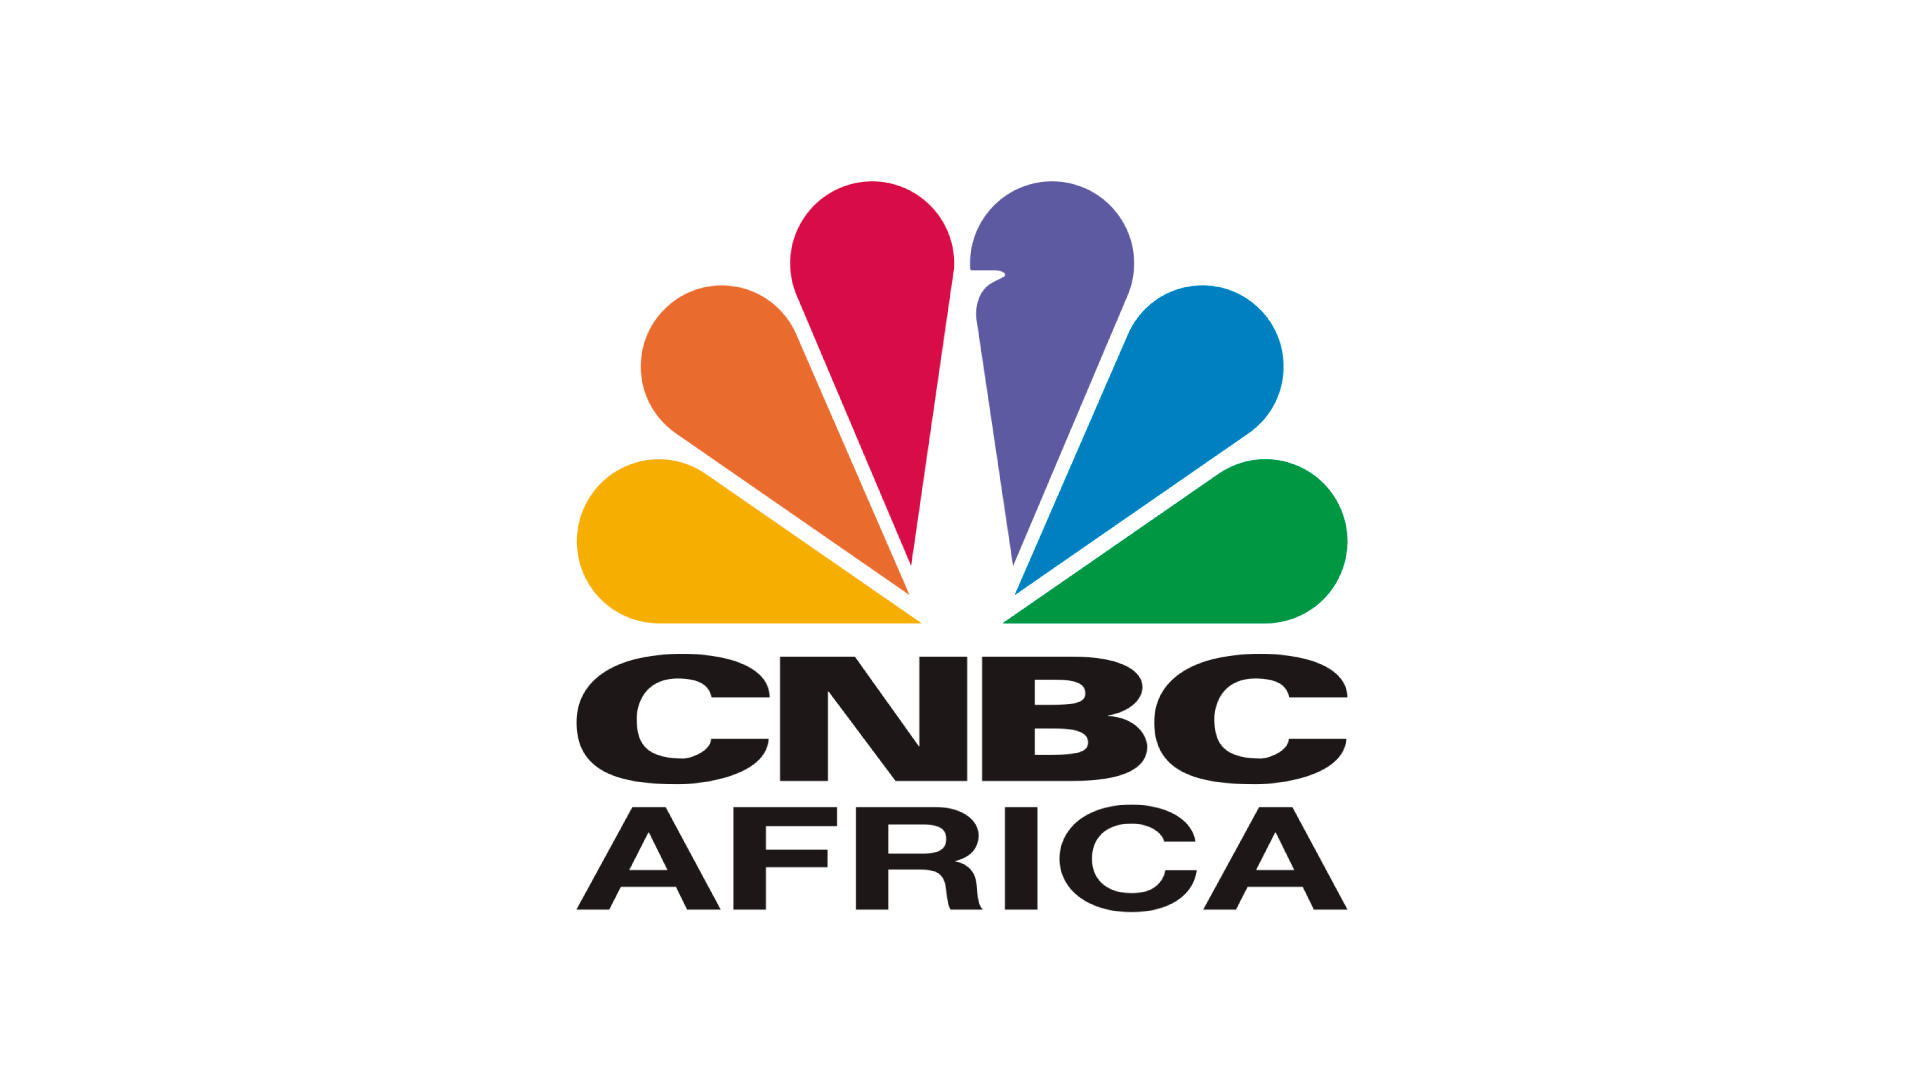 CNBC Africa Watch Live Online